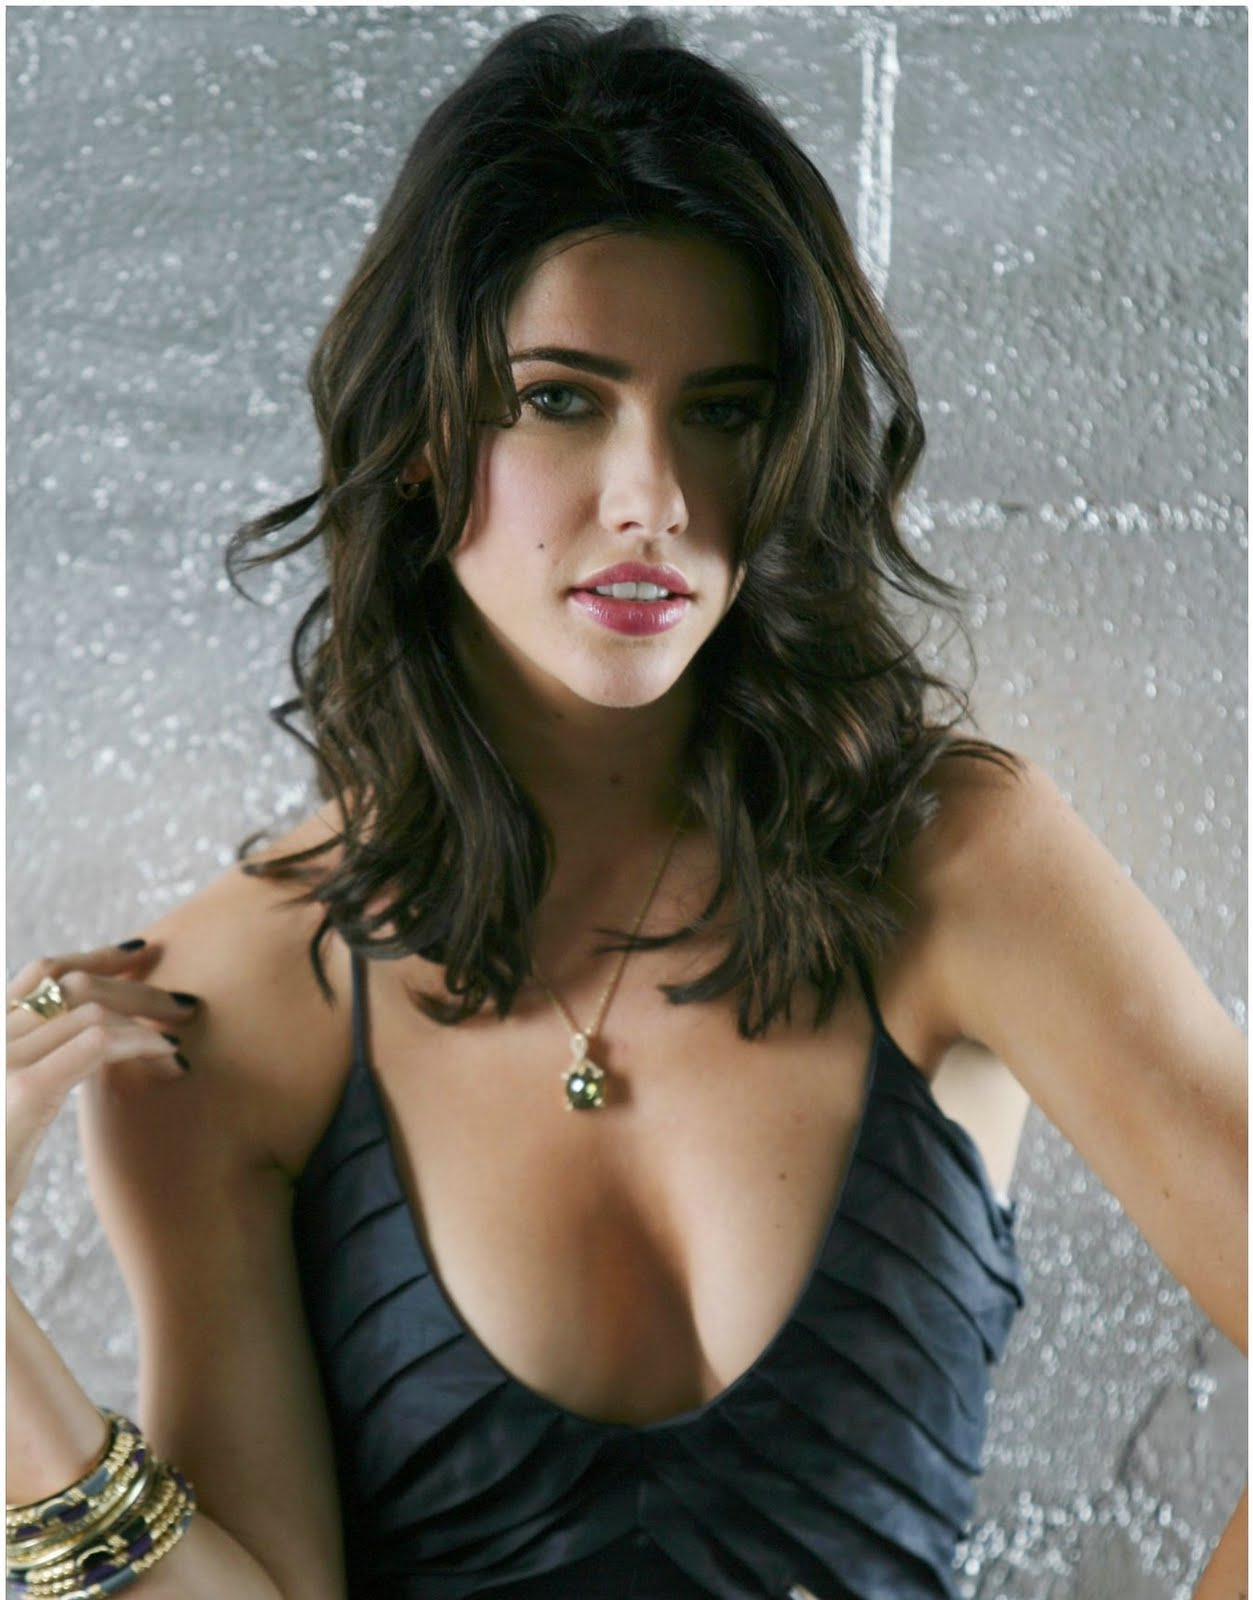 Cleavage Jacqueline MacInnes Wood nude (94 photos), Tits, Hot, Feet, lingerie 2019